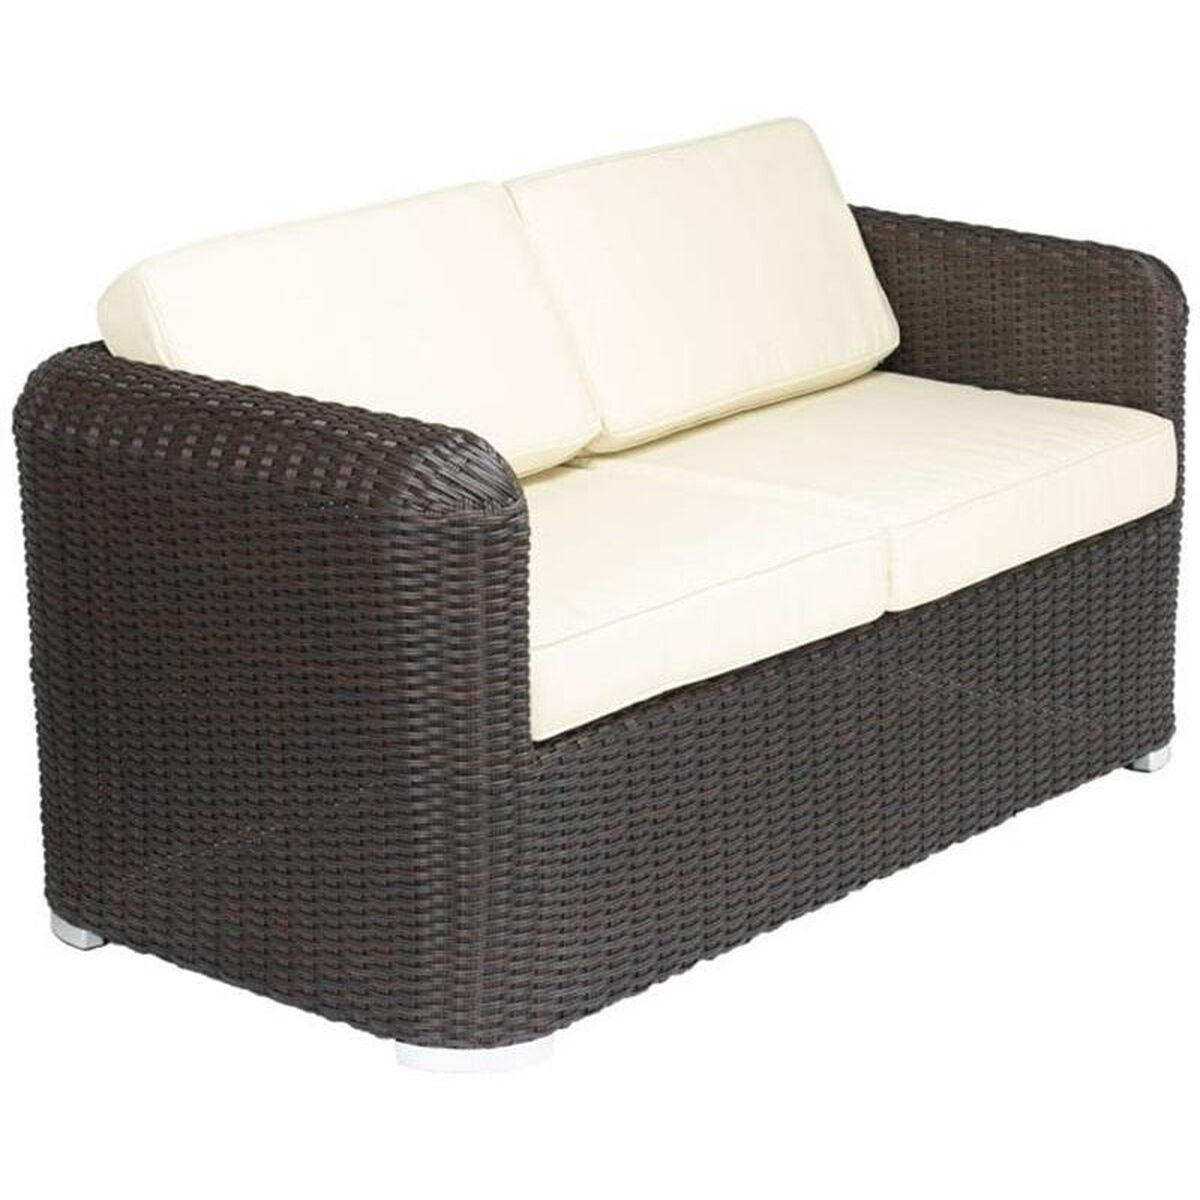 Patio Furniture Southern New Jersey: Apollo Beach Collection Outdoor Wicker Love Seat With Arms